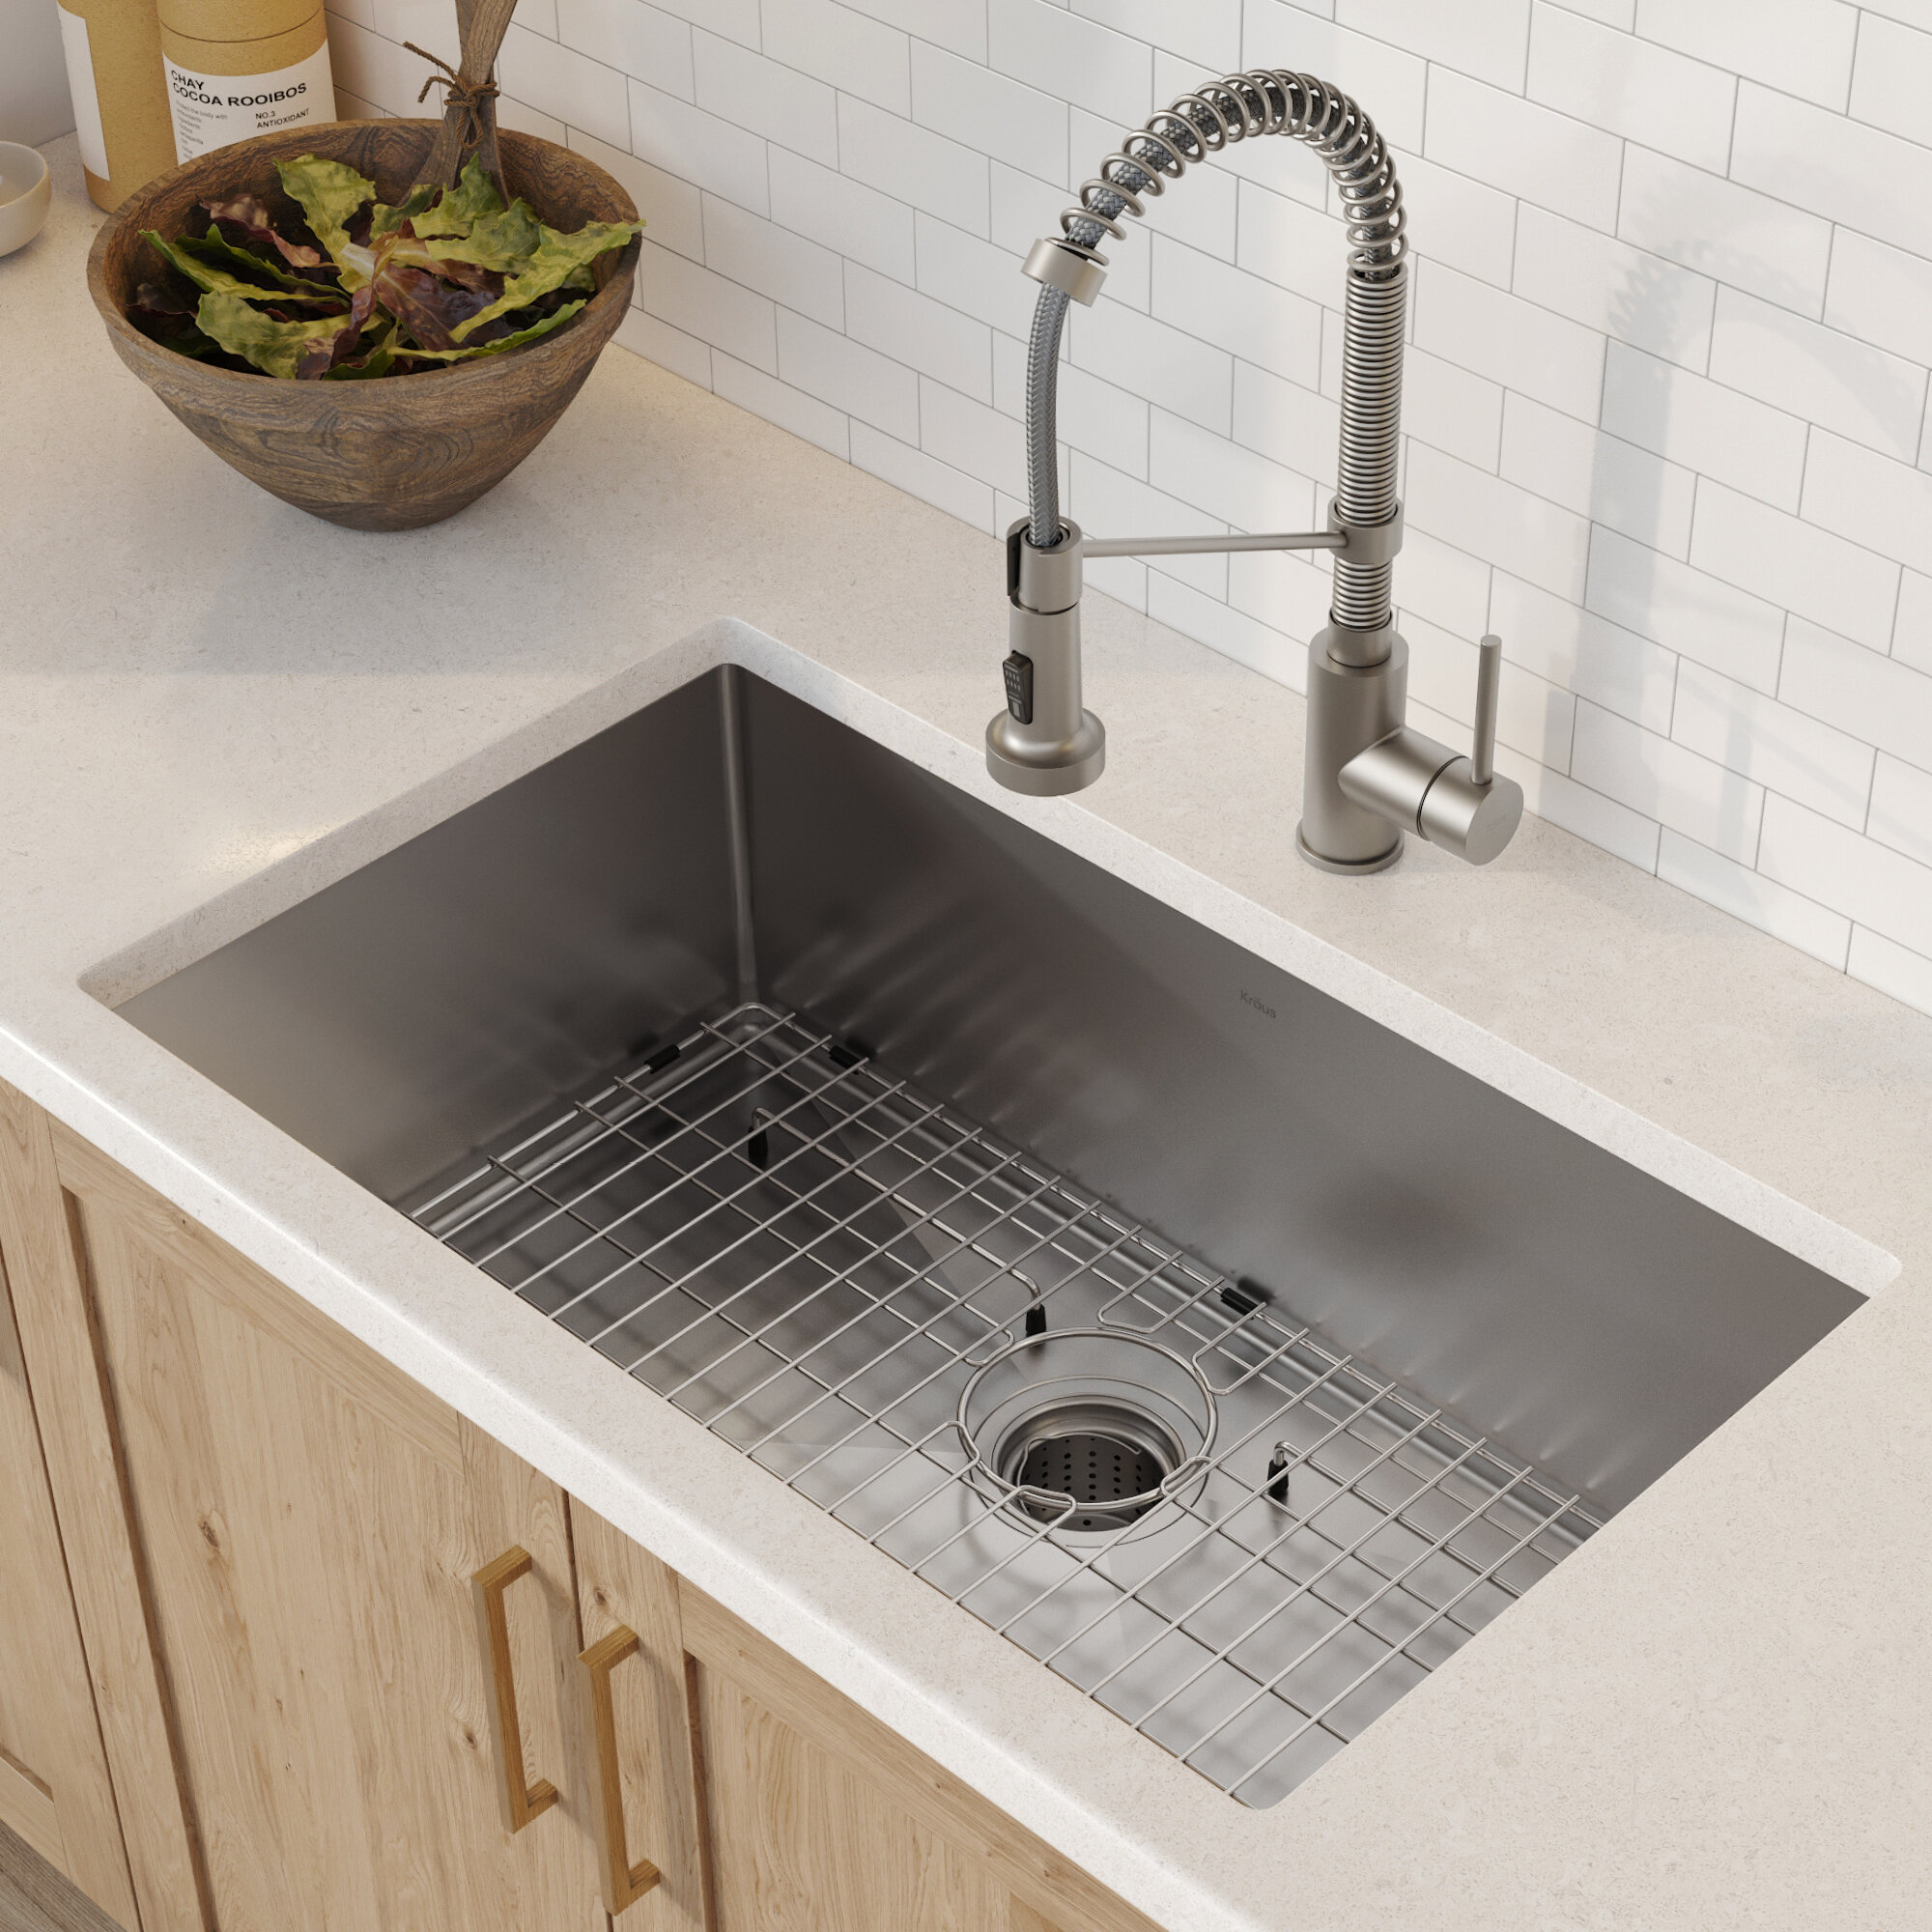 Standart Pro 30 L X 18 W Undermount Kitchen Sink With Faucet And Soap Dispenser